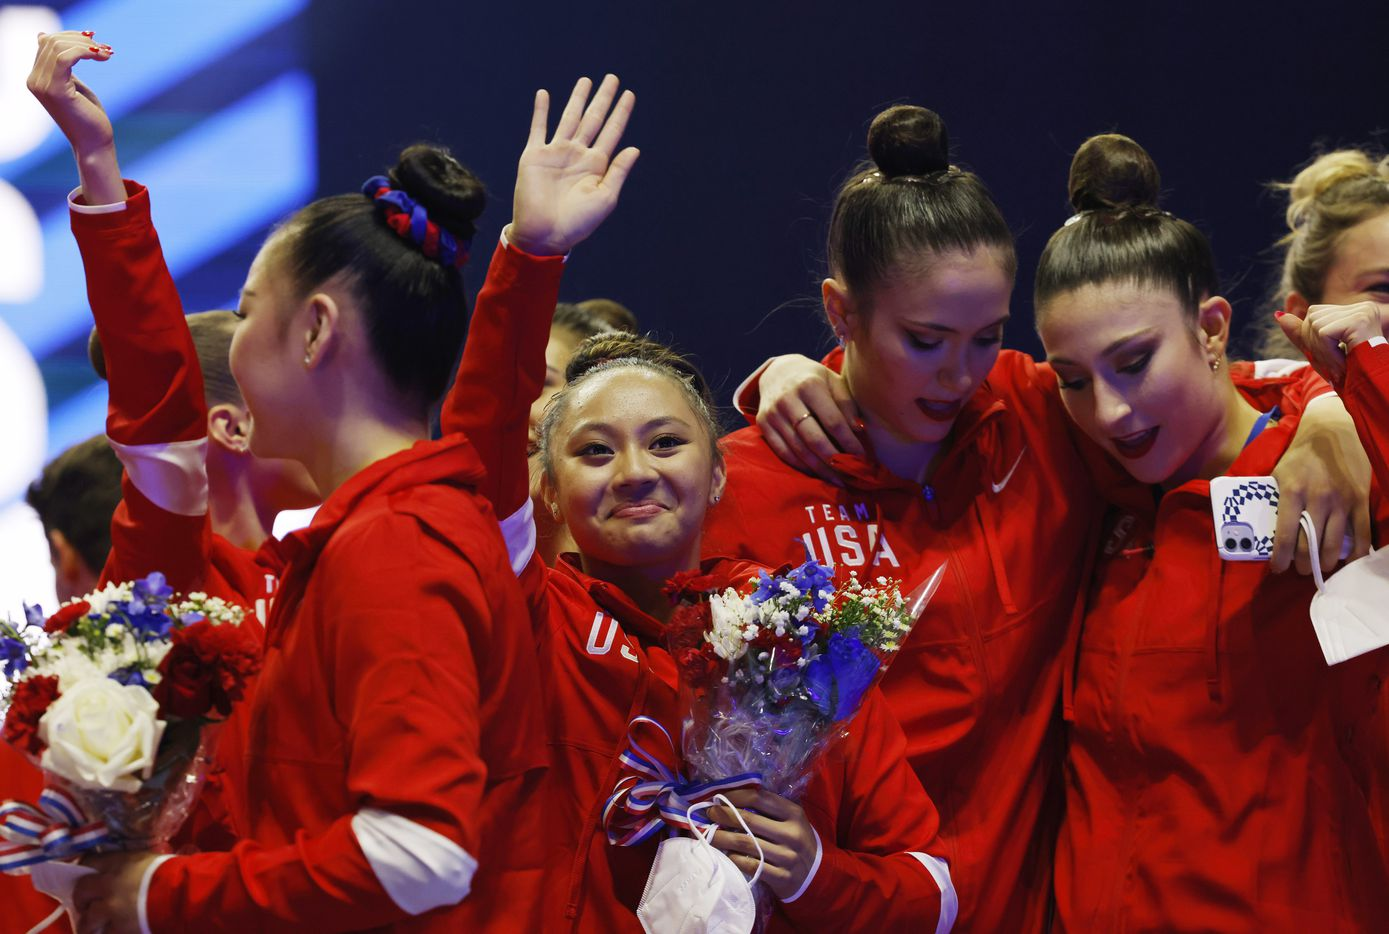 Emma Malabuyo waves to people in the crowd after the women's U.S. Olympic gymnastics team was announced during day 2 of the women's 2021 U.S. Olympic Trials at The Dome at America's Center on Sunday, June 27, 2021 in St Louis, Missouri.(Vernon Bryant/The Dallas Morning News)